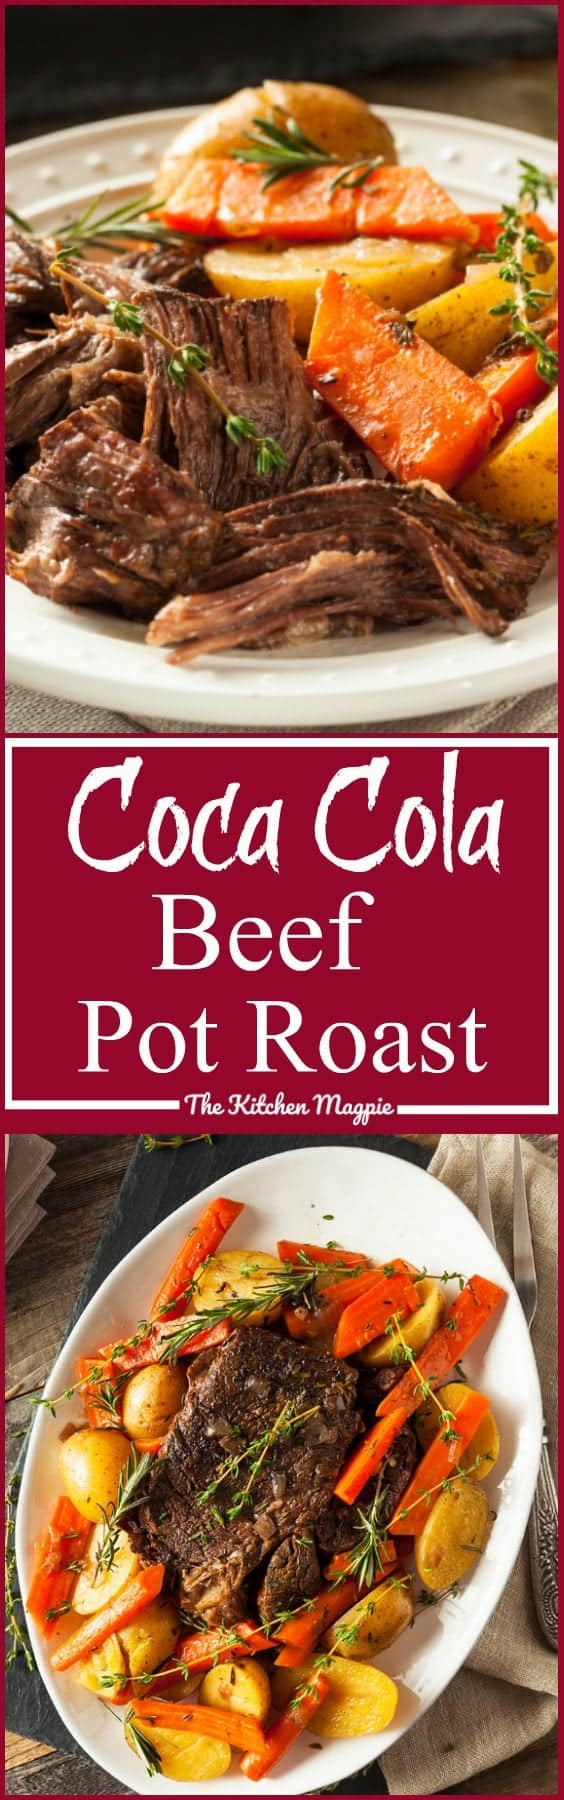 "Beef Coca Cola Pot Roast AKA ""Pop"" Roast! This roast uses soda pop to make the gravy. I was so surprised at how delicious it was! A new fun favourite! from @kitchenmagpie"